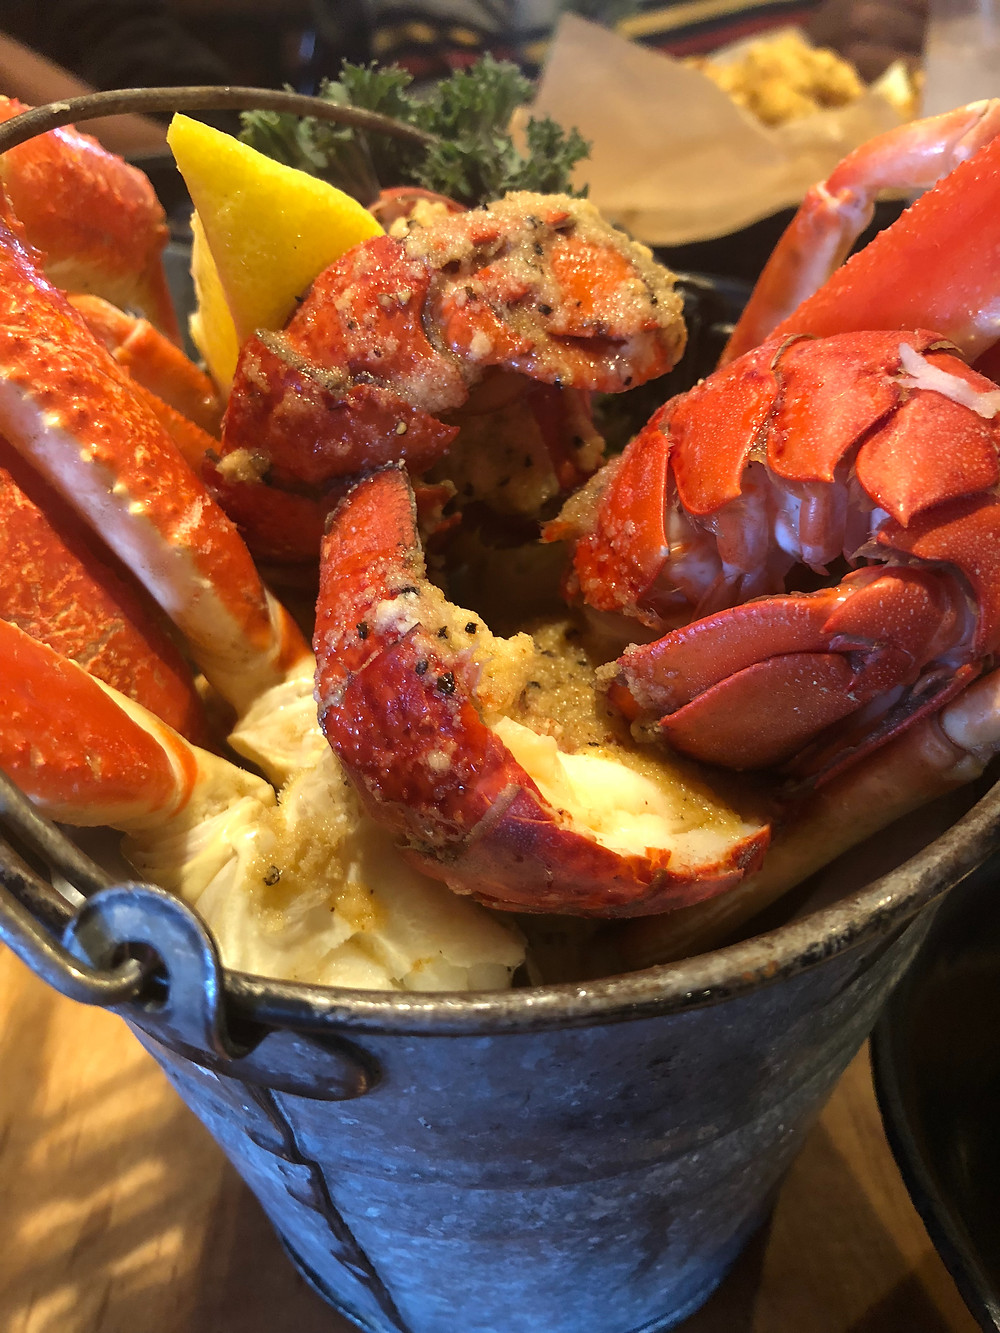 Lobster and Crab Bucket